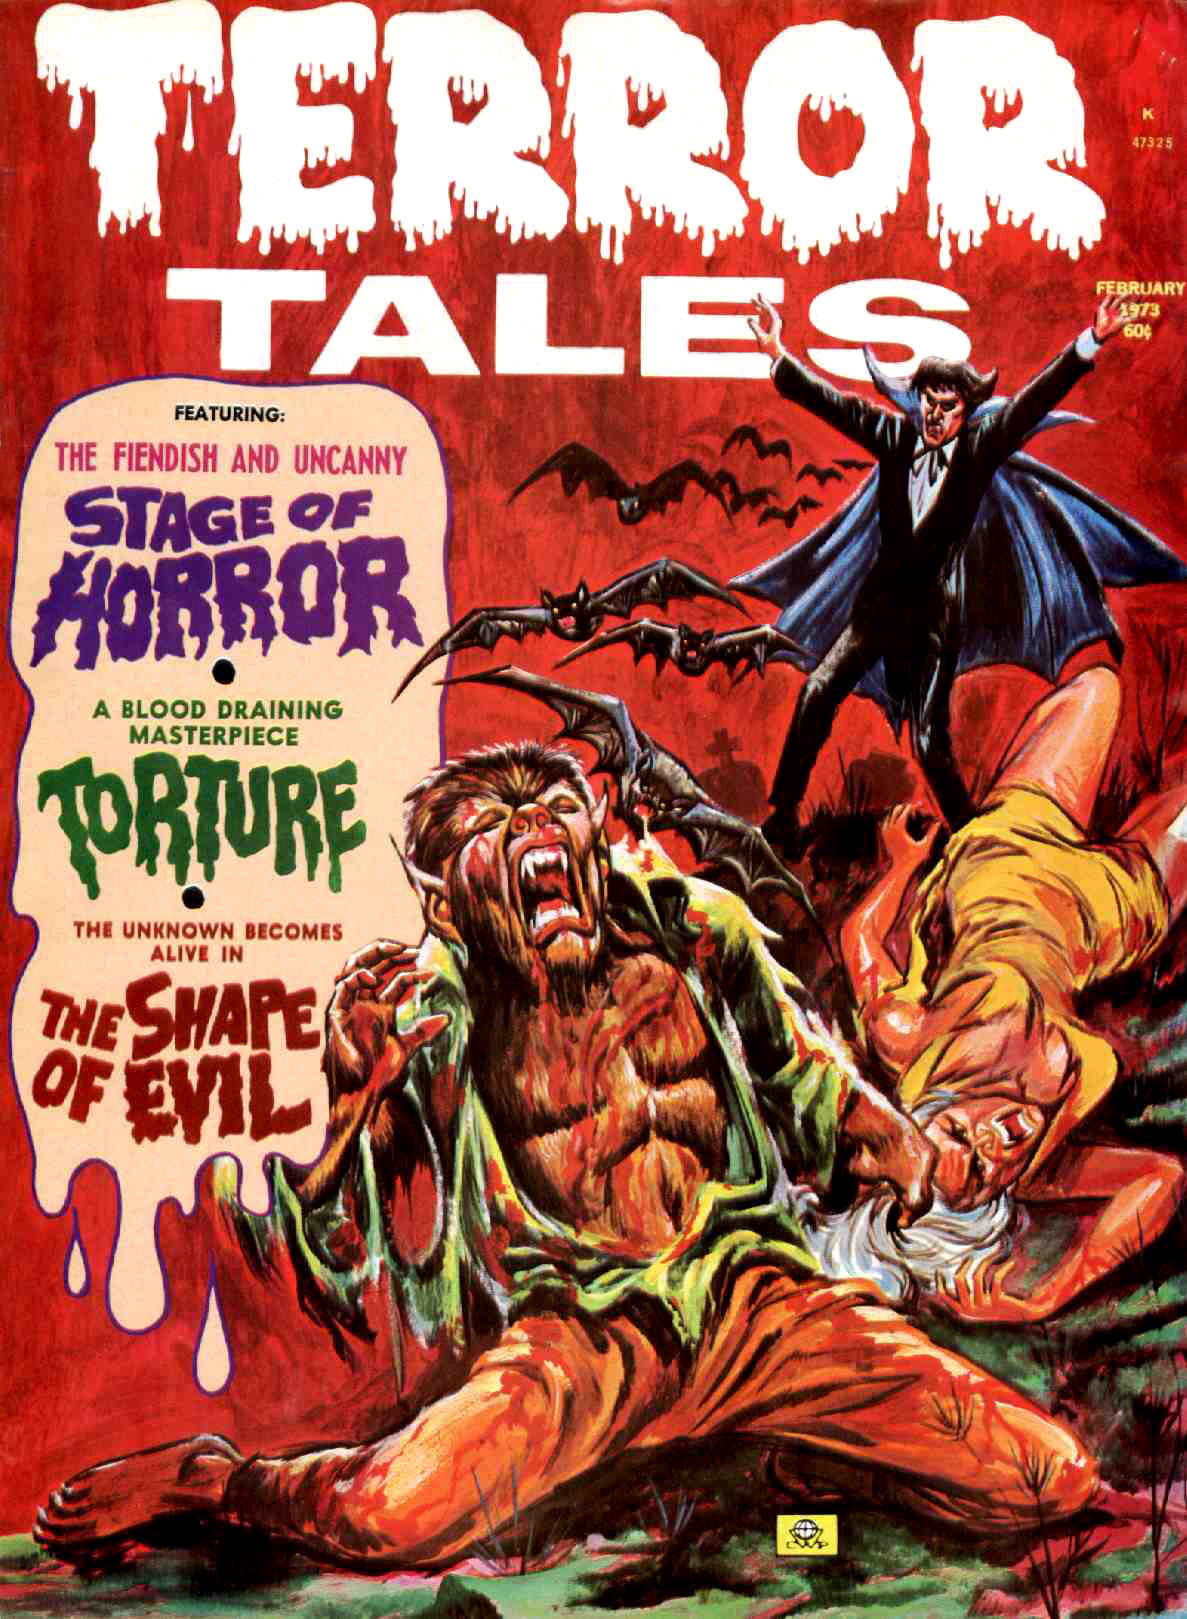 Terror Tales Vol. 05 #1 (Eerie Publications, 1973)